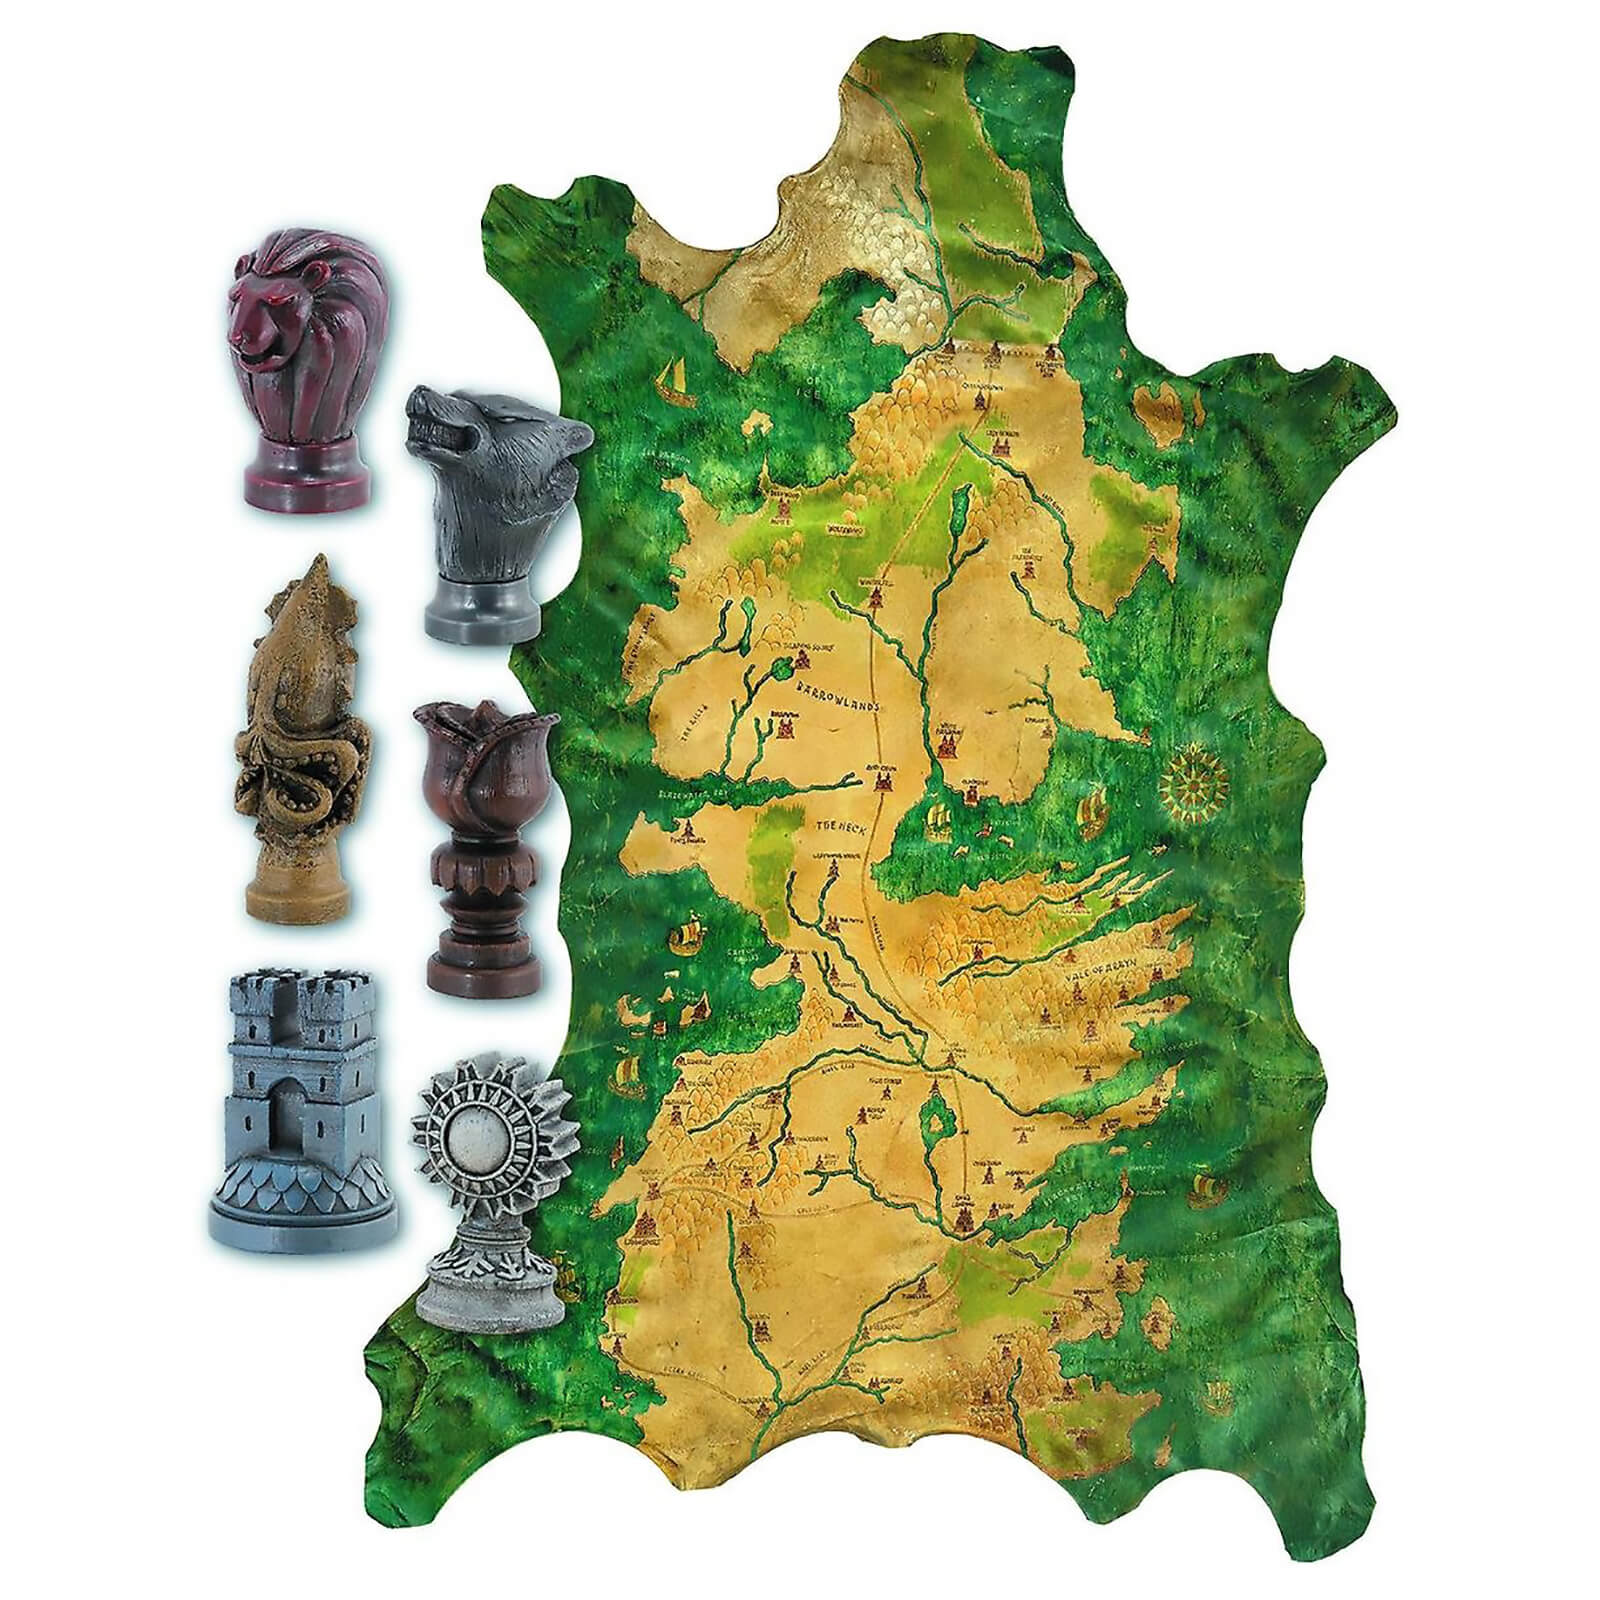 Dark Horse - Game of Thrones Stark Map Marker Set. Great ... on spooksville map, downton abbey map, narnia map, bloodline map, got map, justified map, jericho map, qarth map, camelot map, walking dead map, a storm of swords map, gendry map, world map, star trek map, guild wars 2 map, clash of kings map, dallas map, valyria map, winterfell map, jersey shore map,